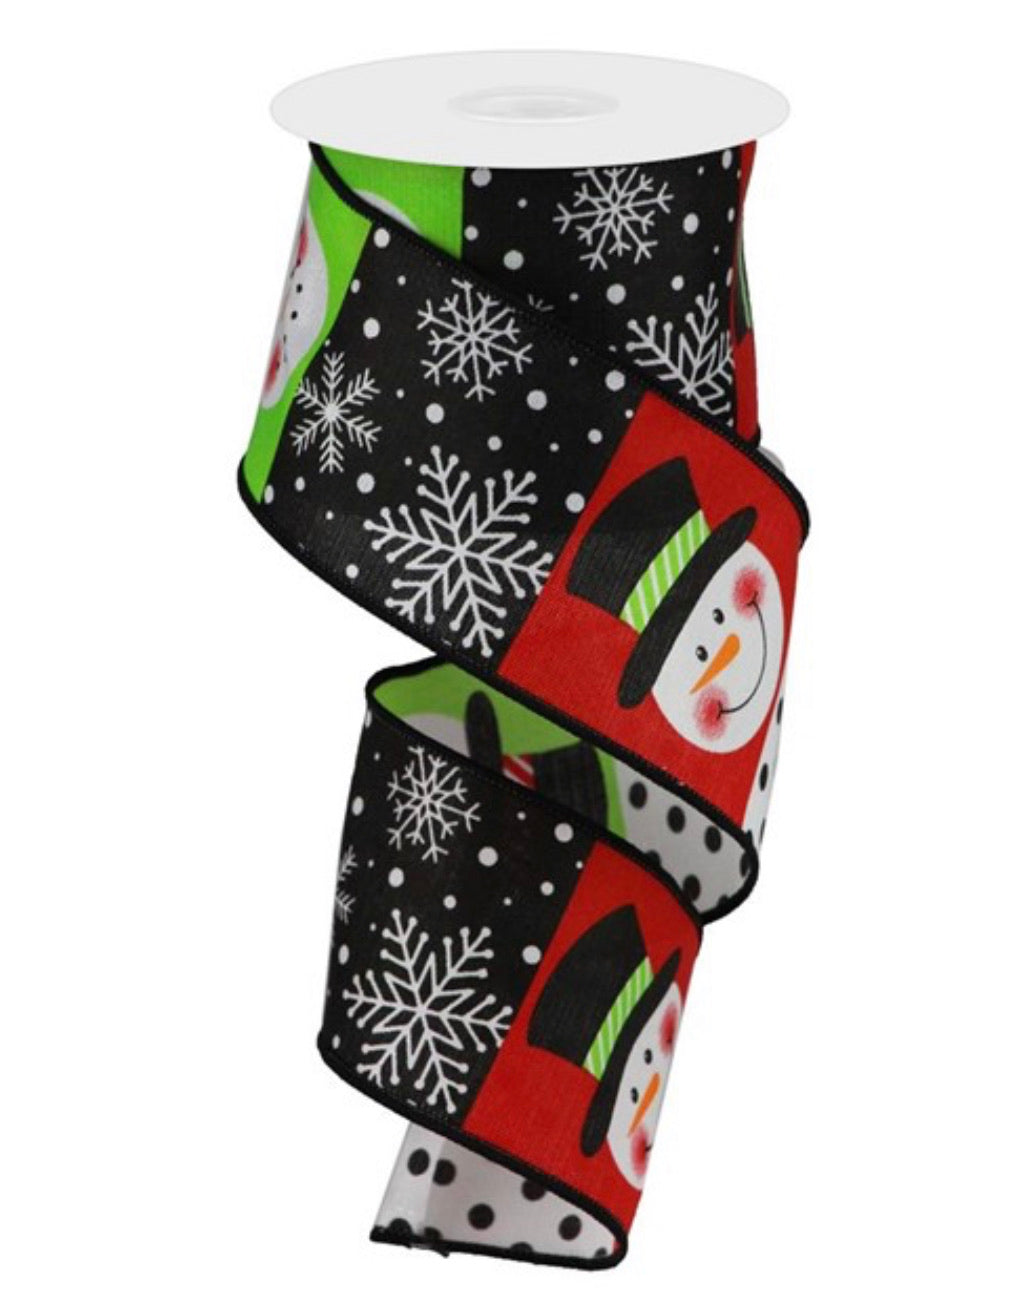 "Snowman ribbon 2.5"" red and black blocks"